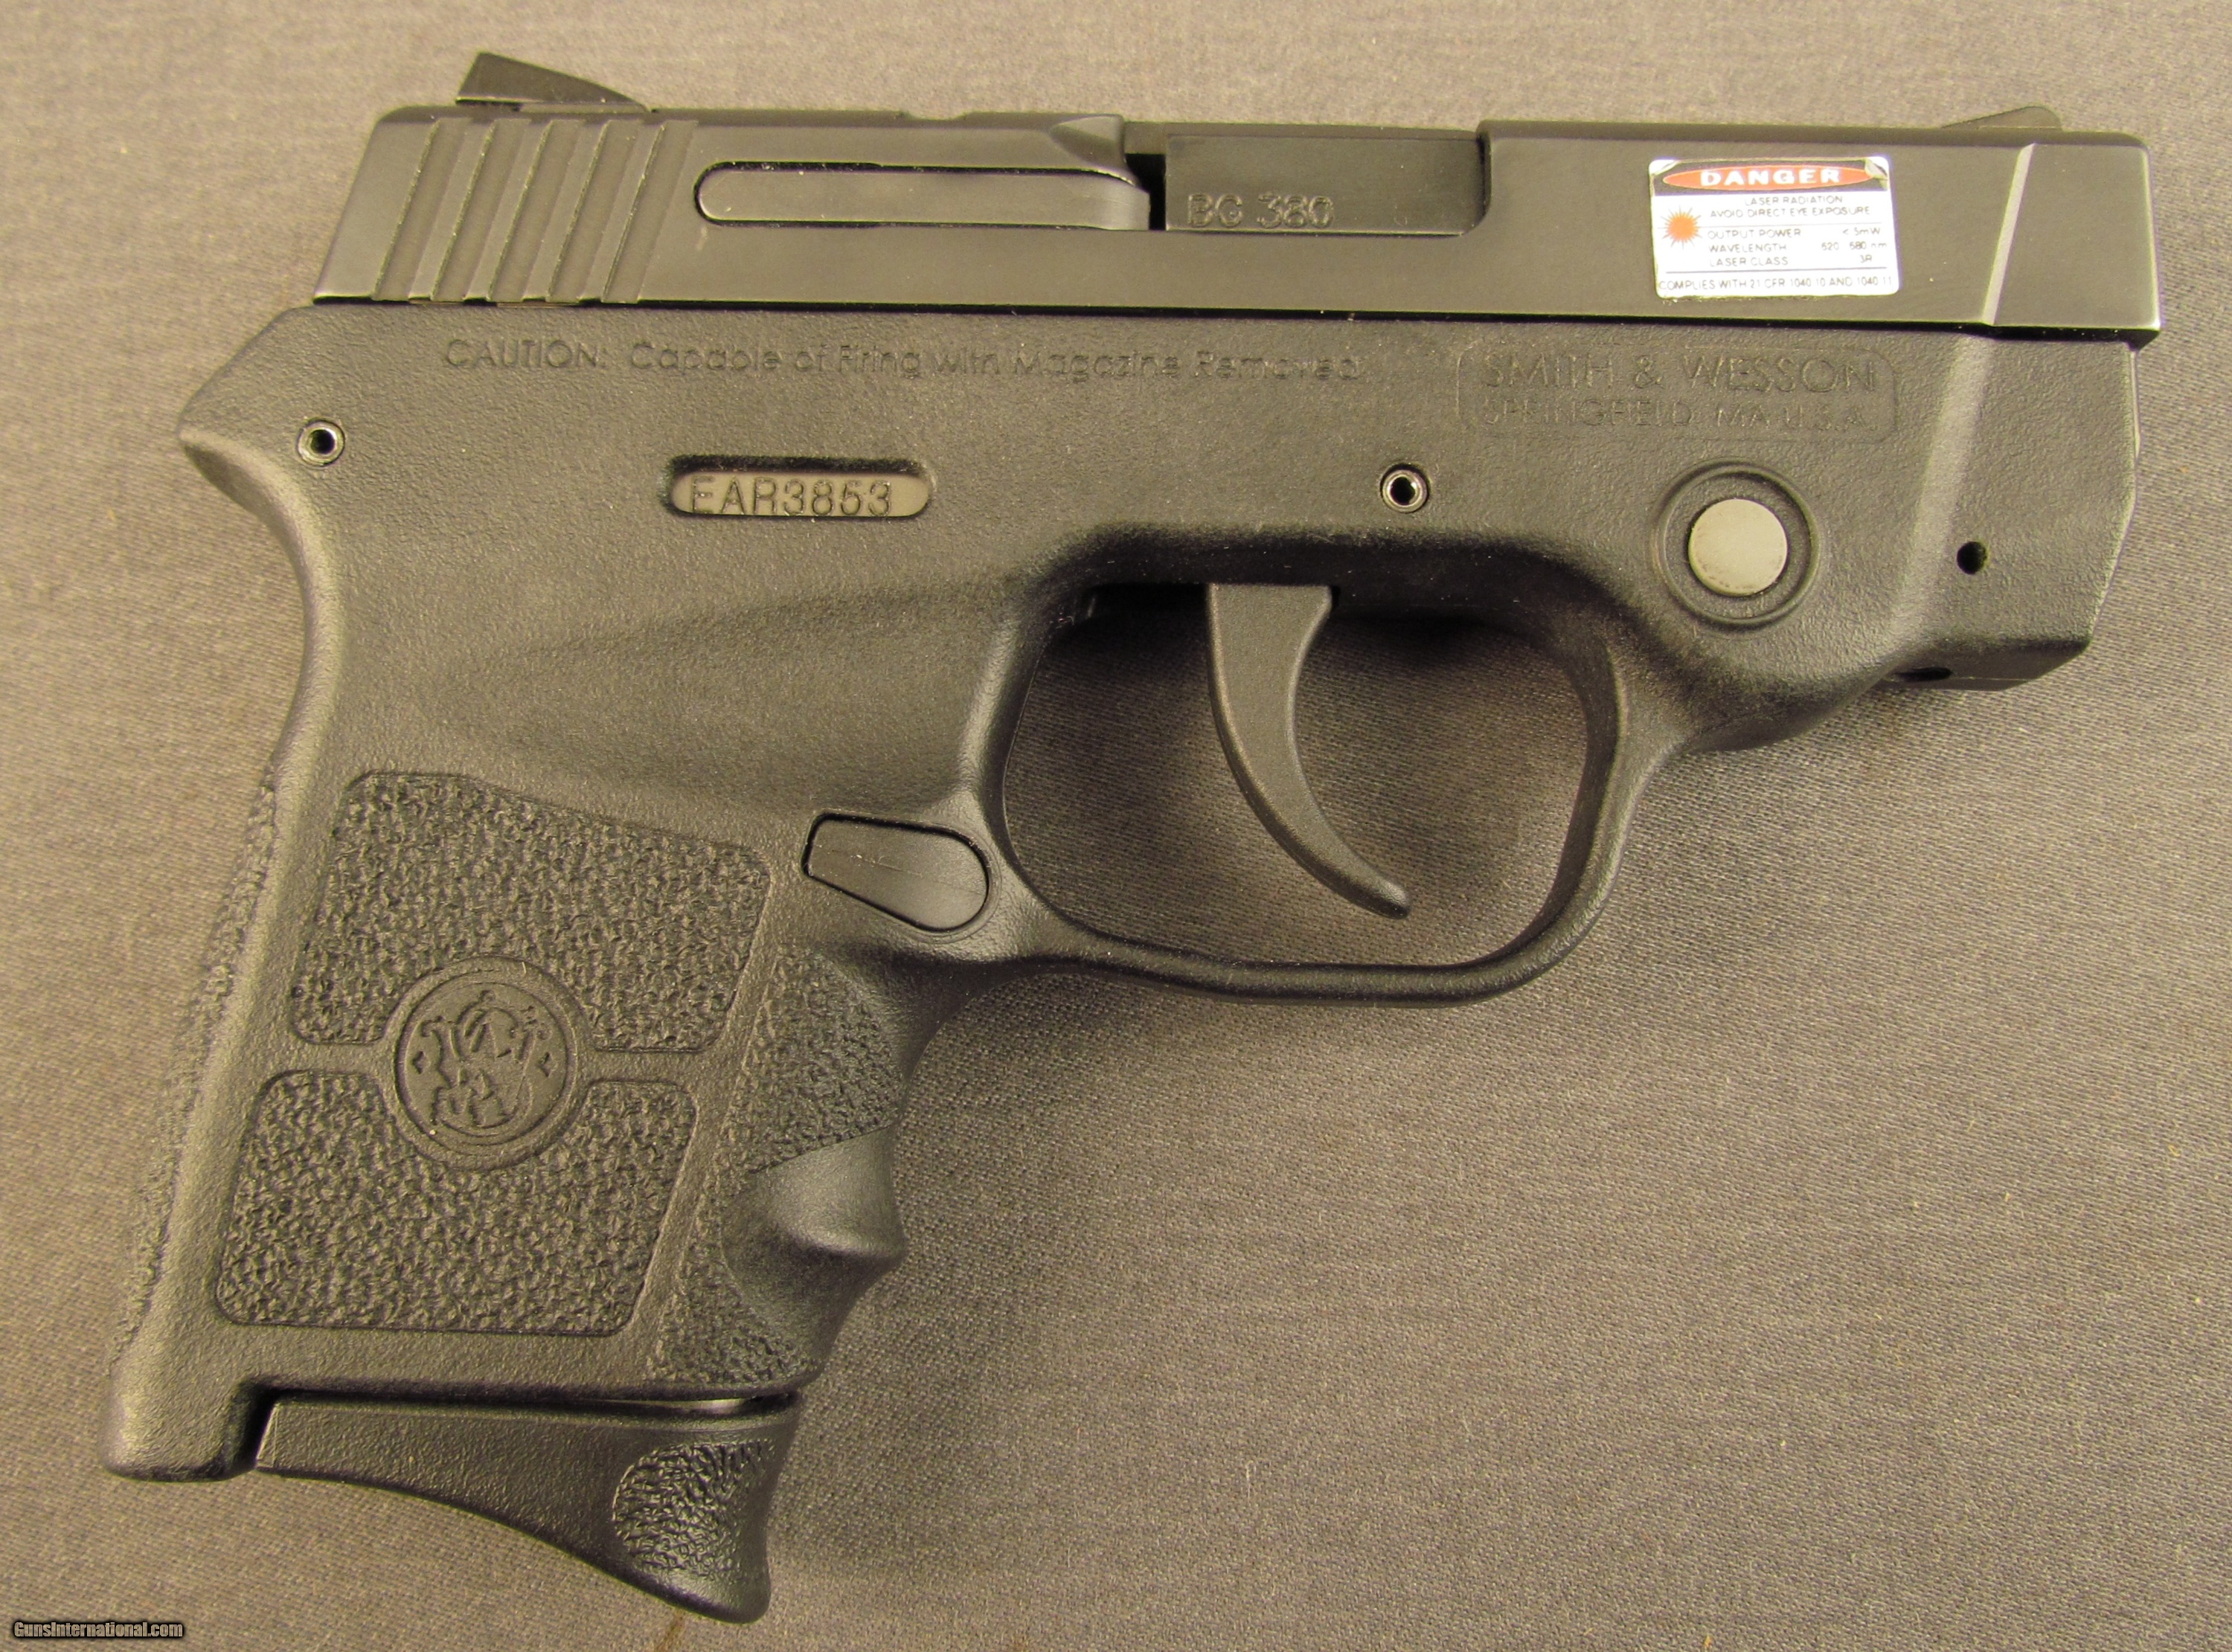 Smith & Wesson Bodyguard 380 With Red Laser Sight for sale